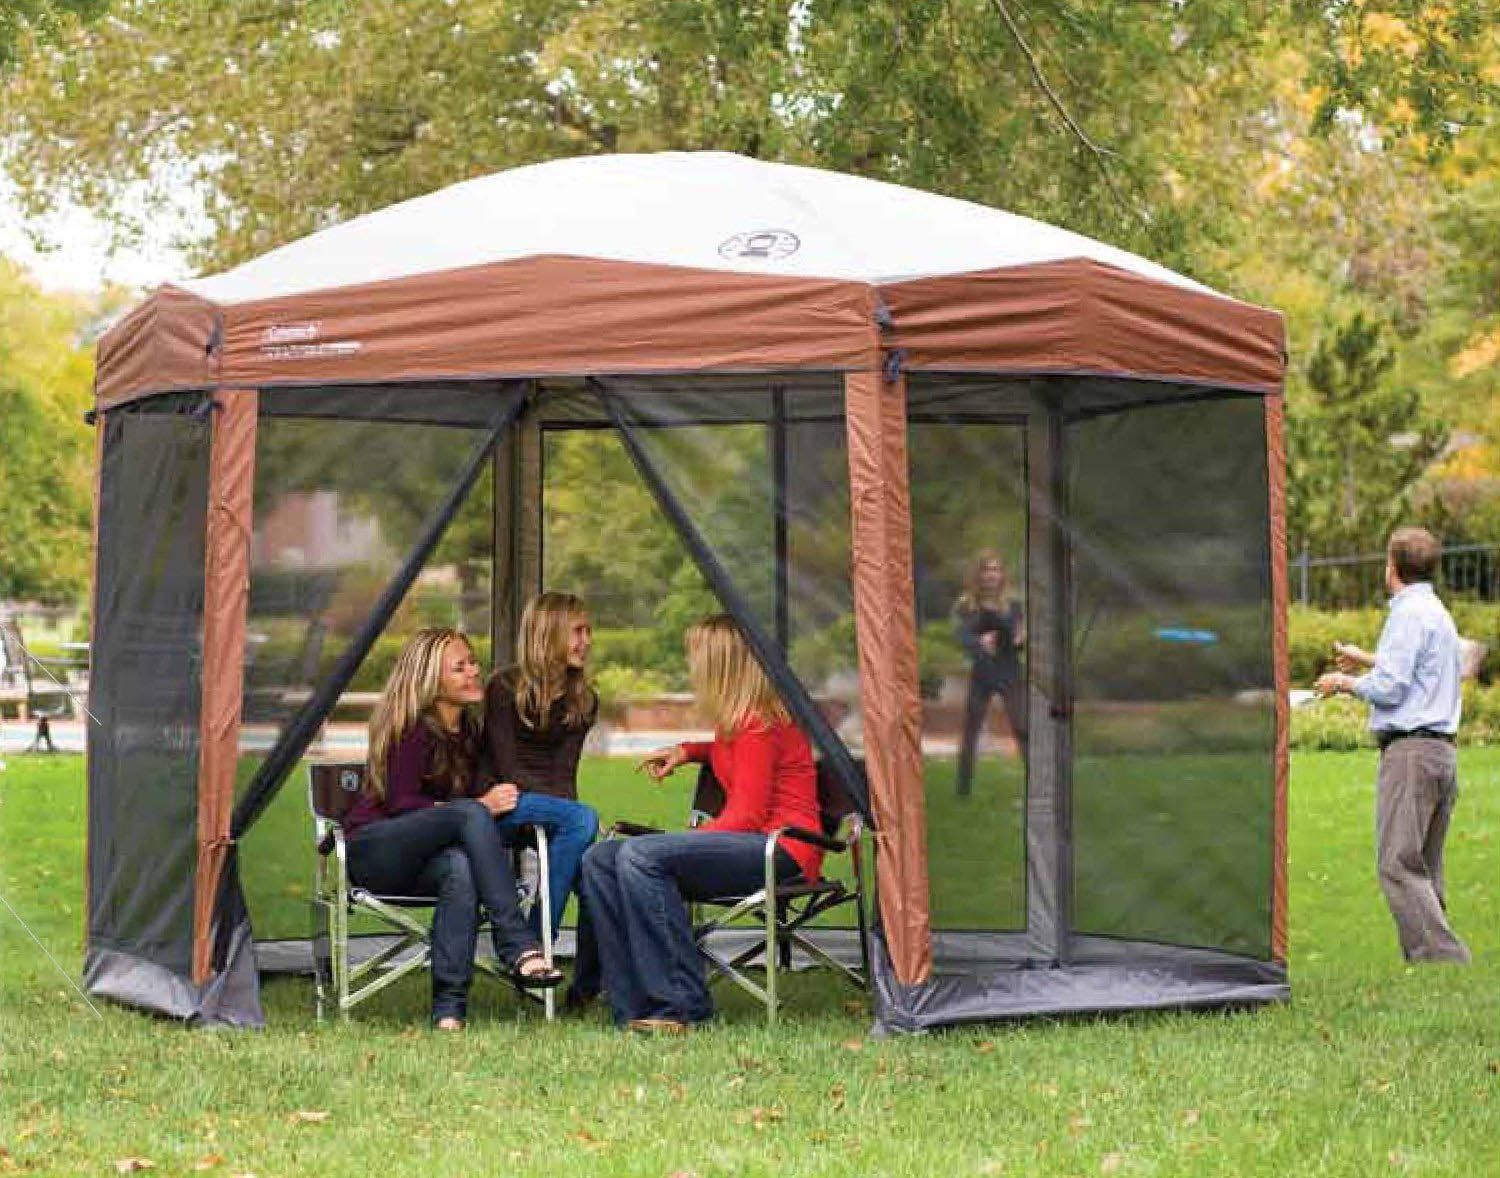 Screened Gazebo Tent for You  Screen Tent Gazebo Canopy. : screened in tent canopy - memphite.com